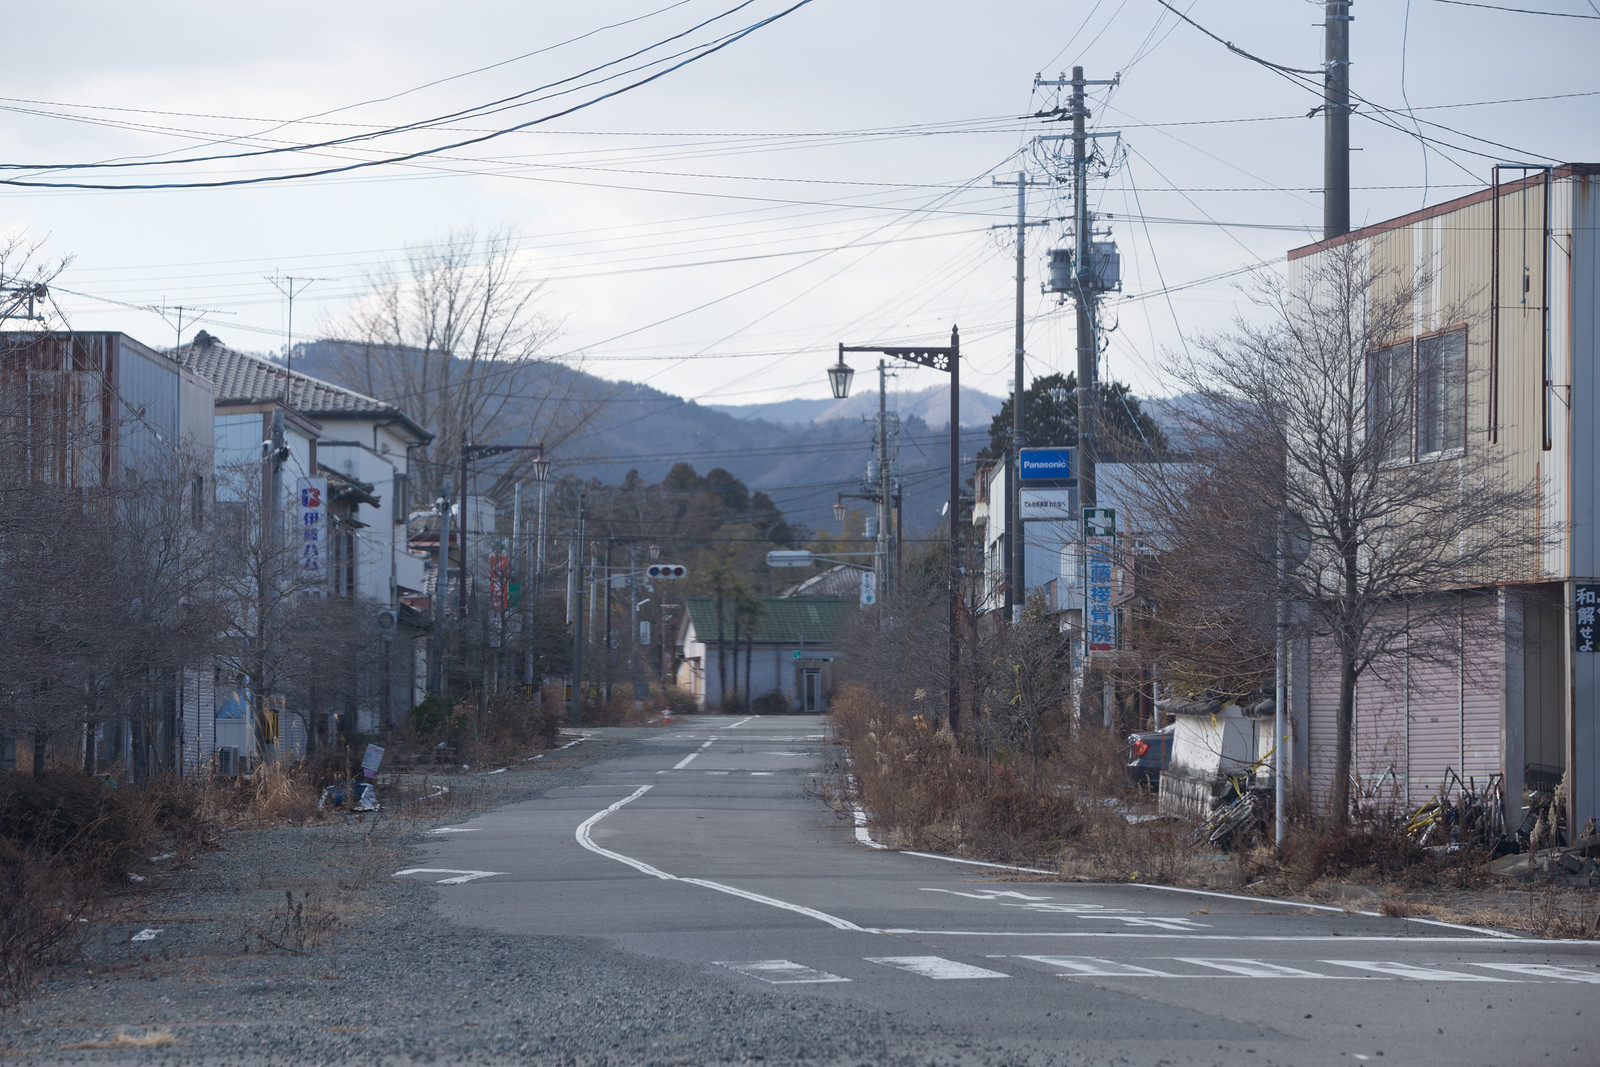 Street in the Heightened Nuclear Exclusion Zone